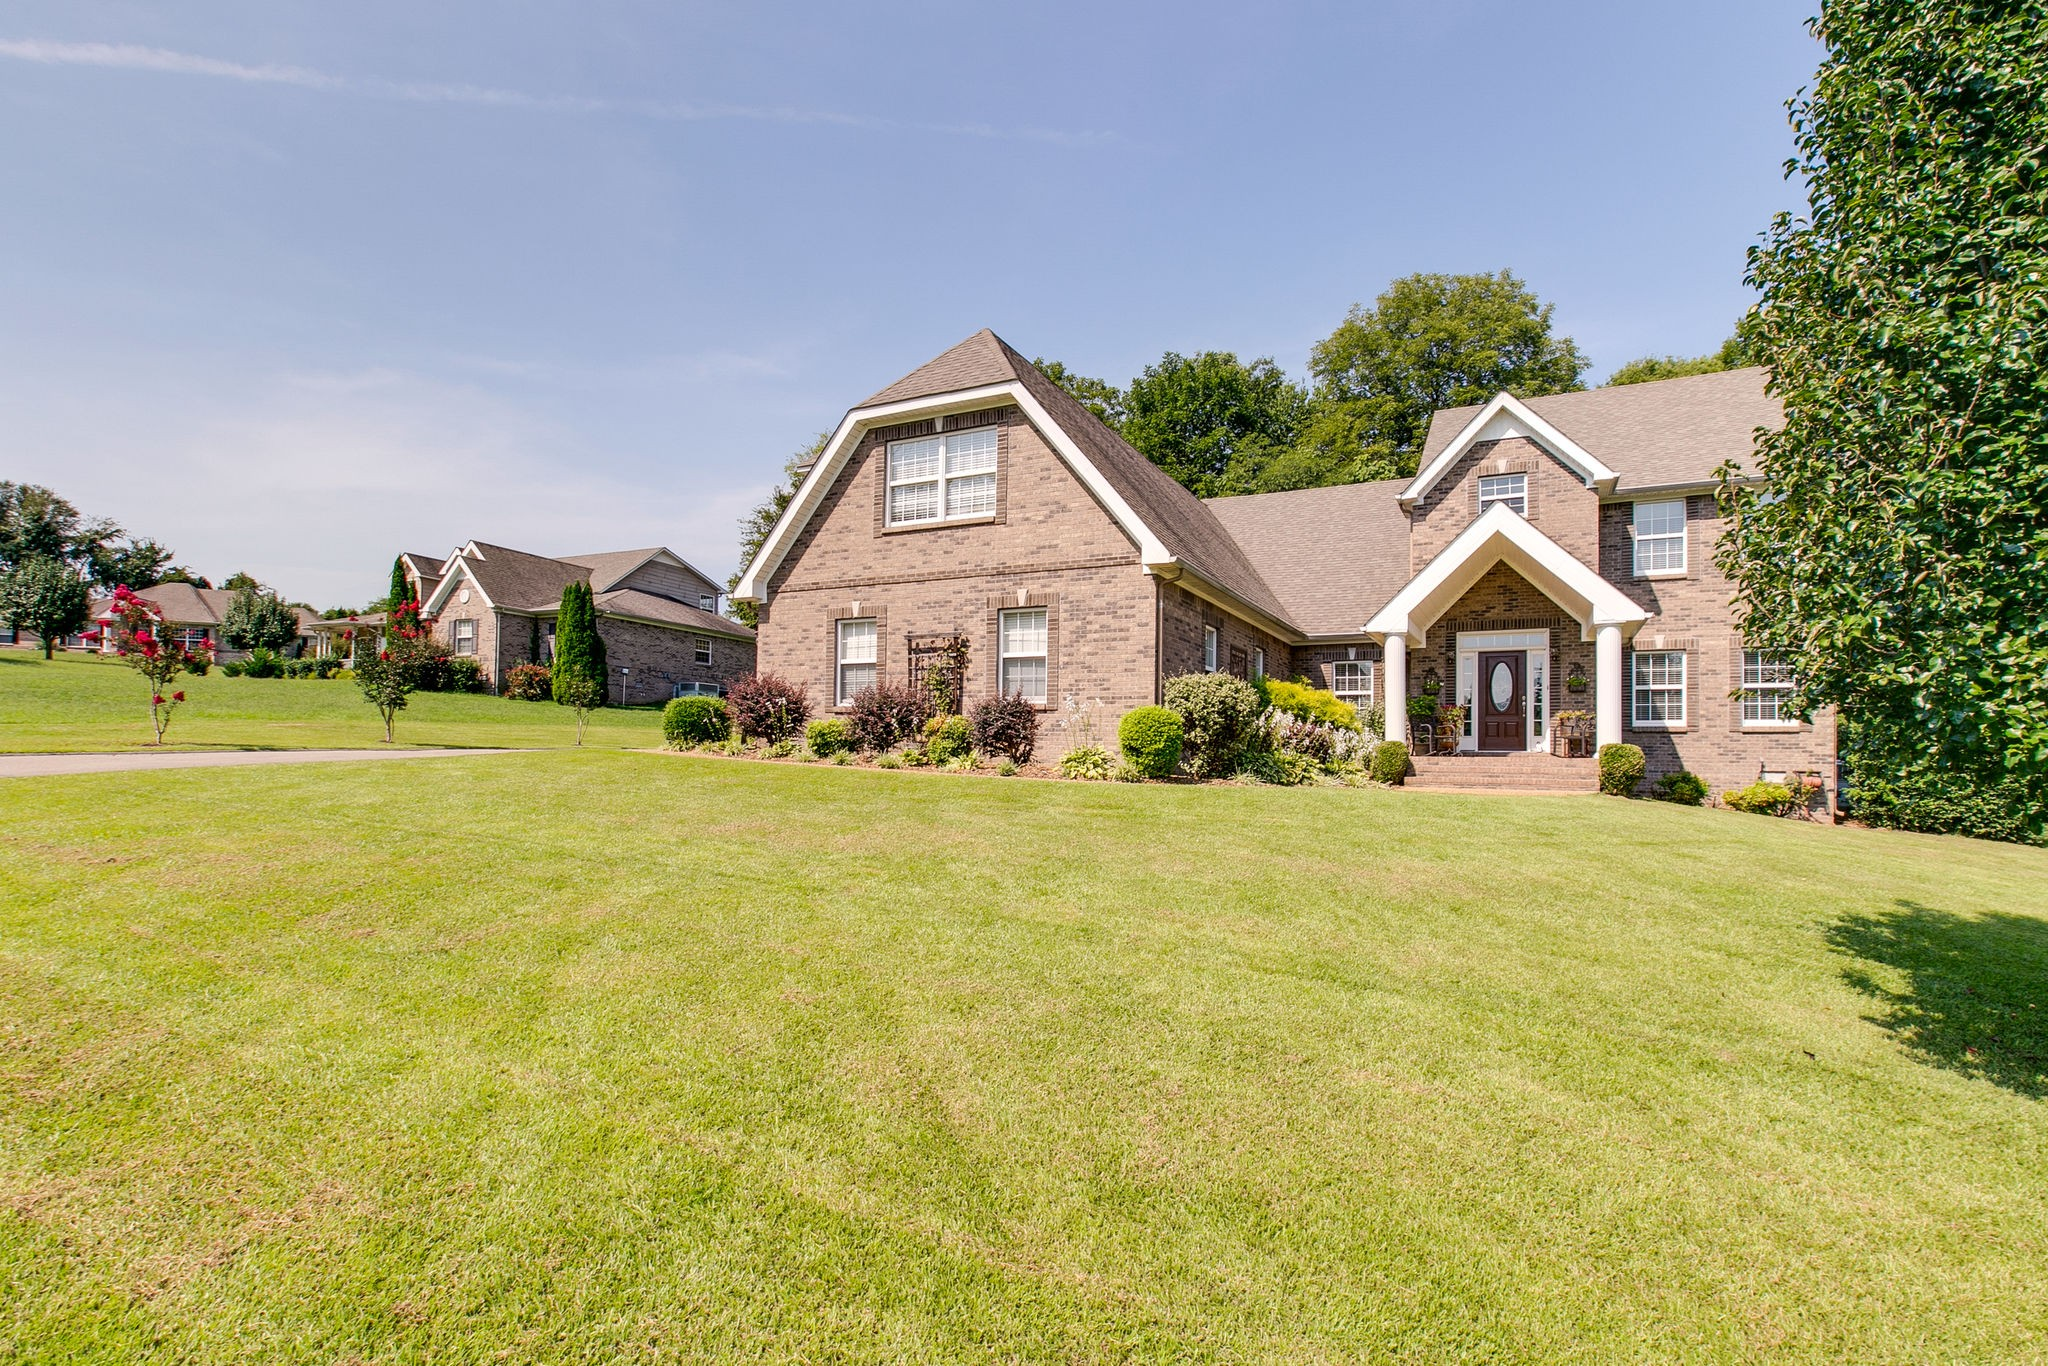 1804 Holden Ct, Spring Hill, Tennessee